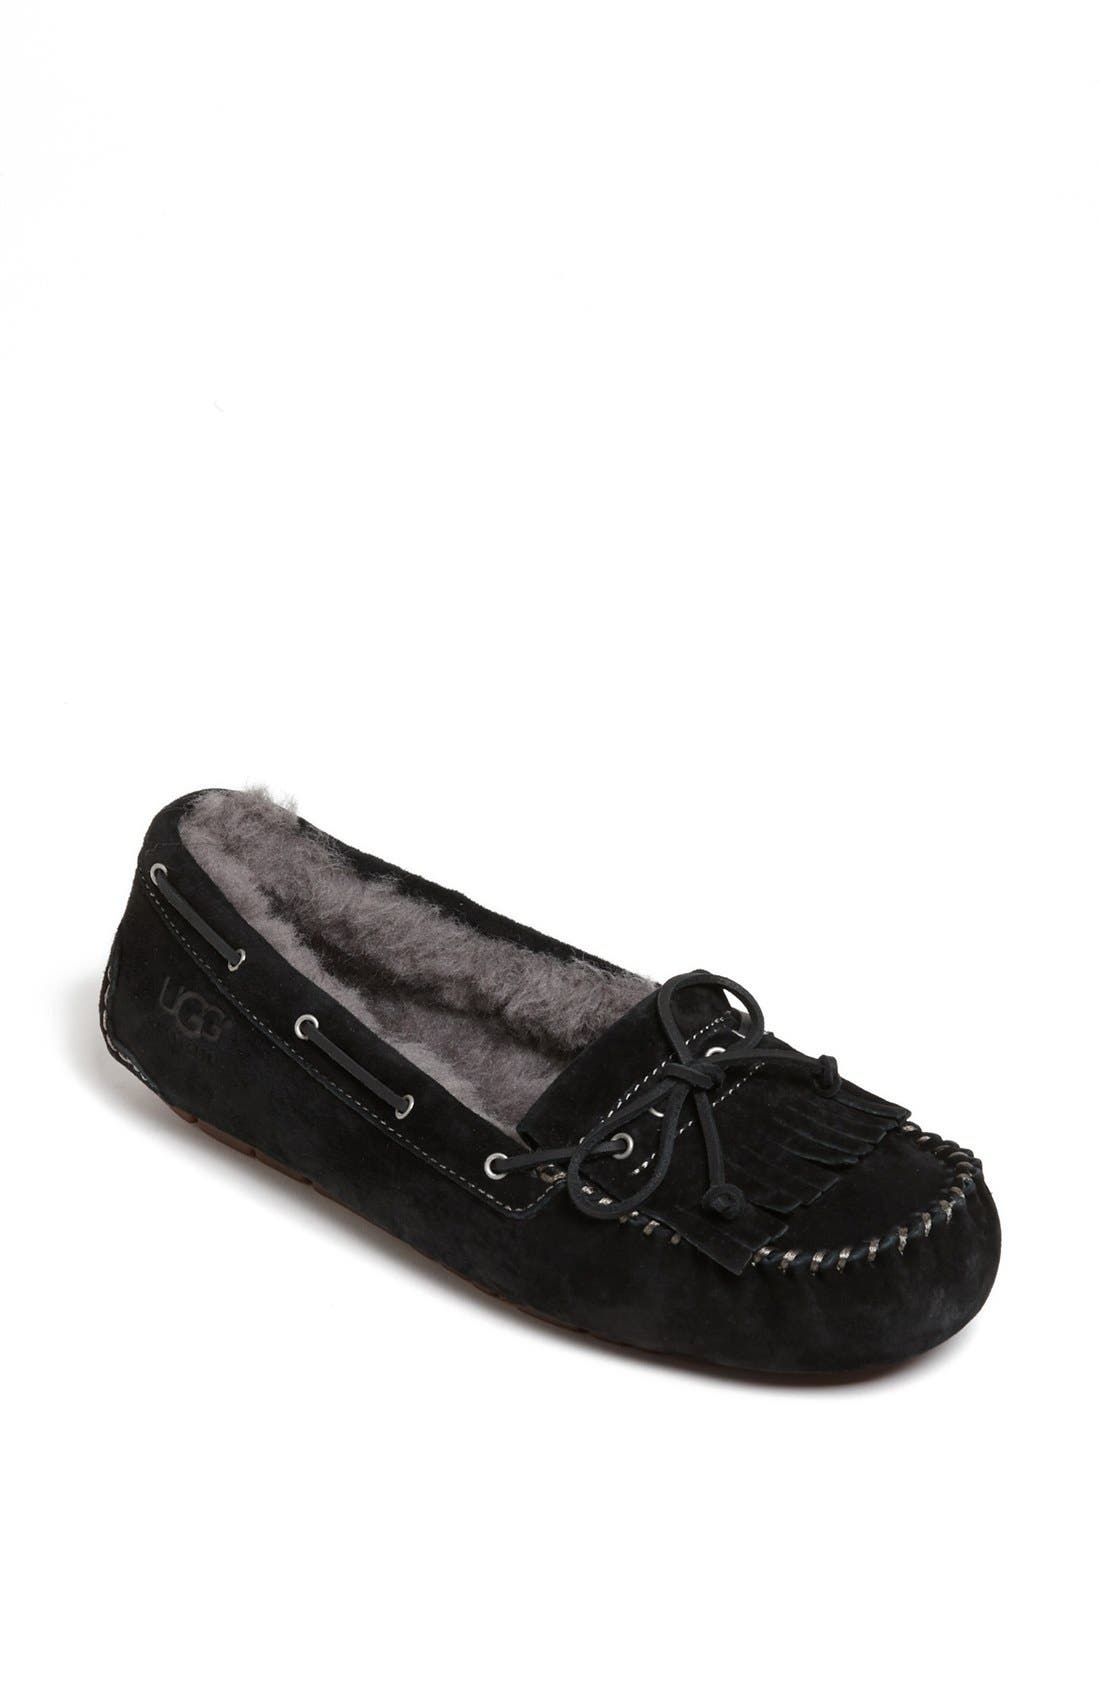 Alternate Image 1 Selected - UGG® Australia 'Mandy' Slipper (Women)